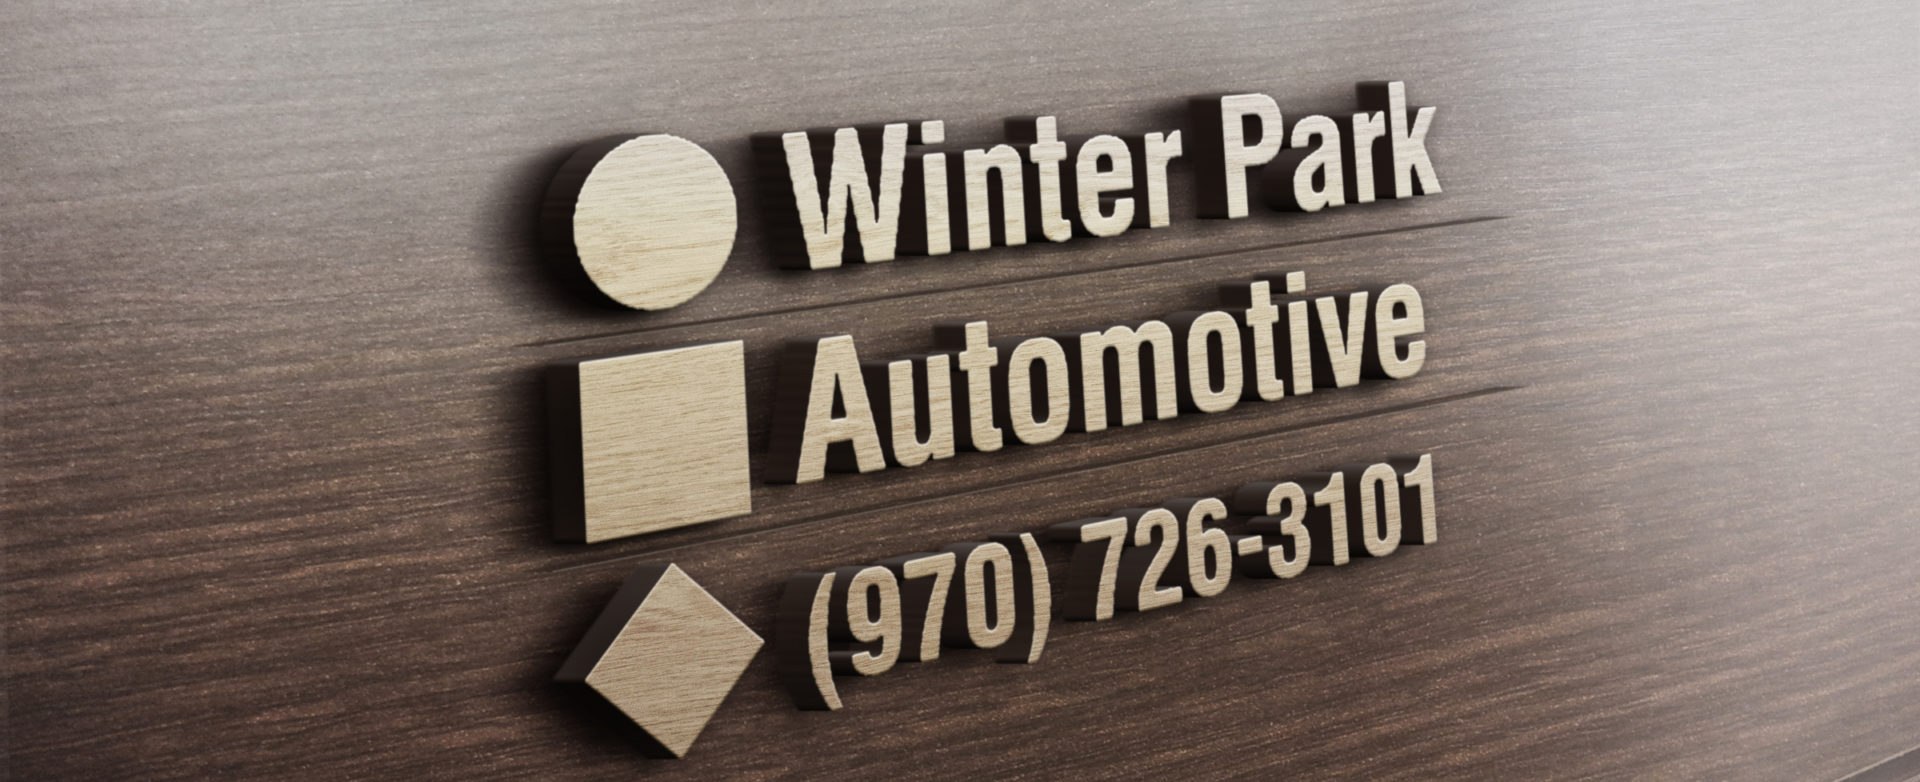 Winter Park Automotive